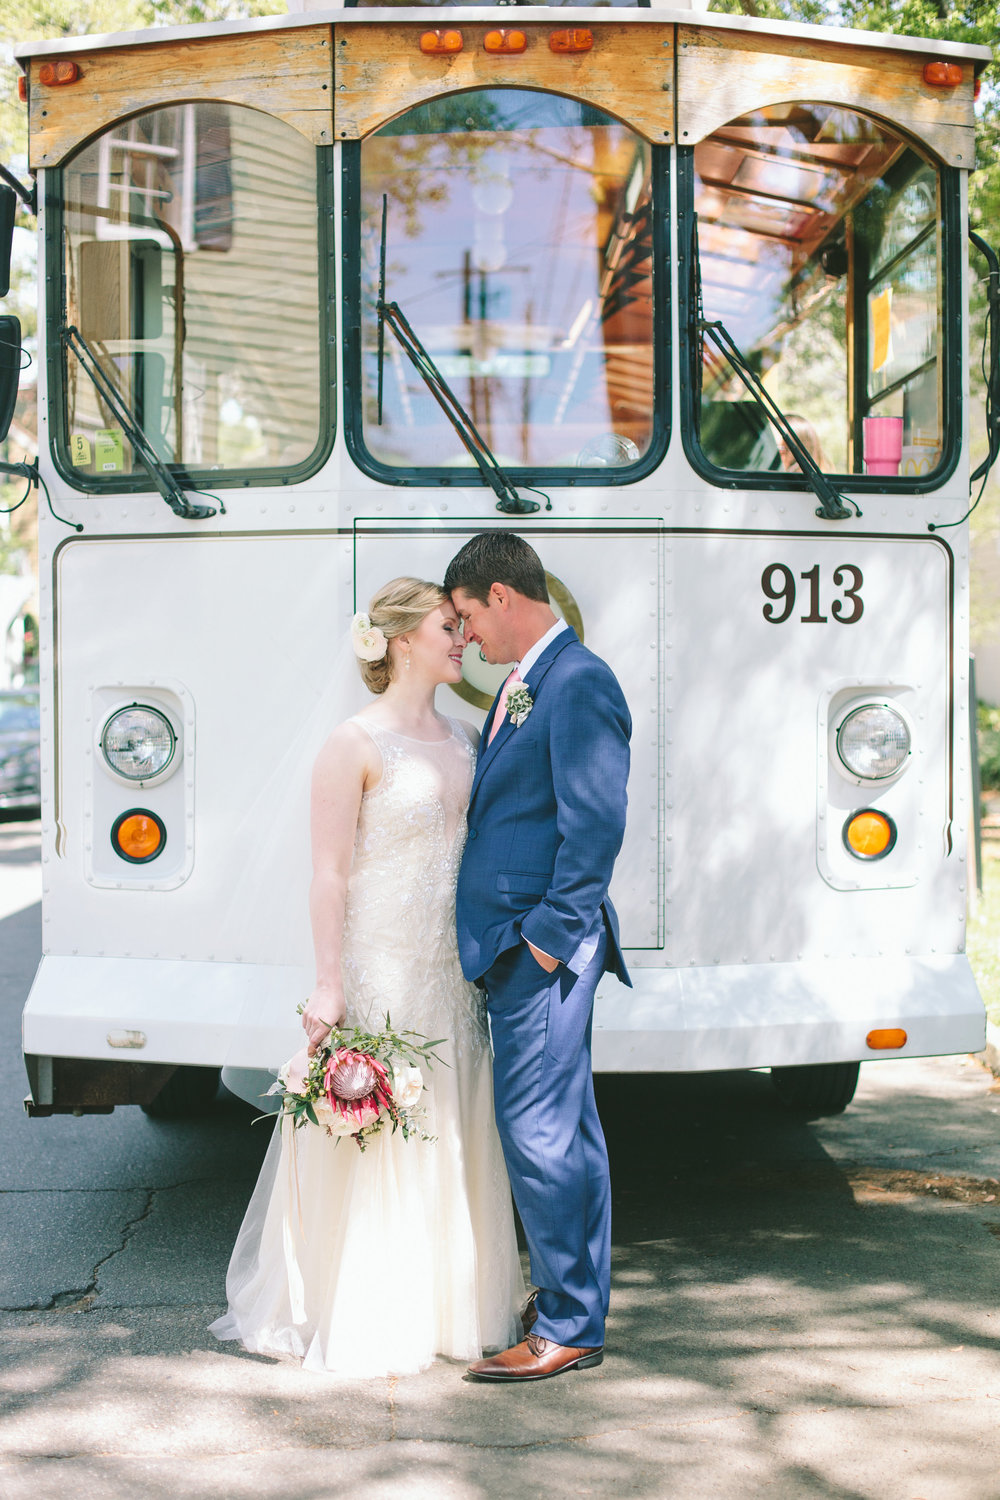 allison-blake-ivory-and-beau-bridal-boutique-savannah-wedding-planner-savannah-florist-jenna-davis-photography-cha-bella-wedding-warren-square-wedding-savannah-square-wedding-savannah-bridal-savannah-weddings-gettin-ready-25.jpg